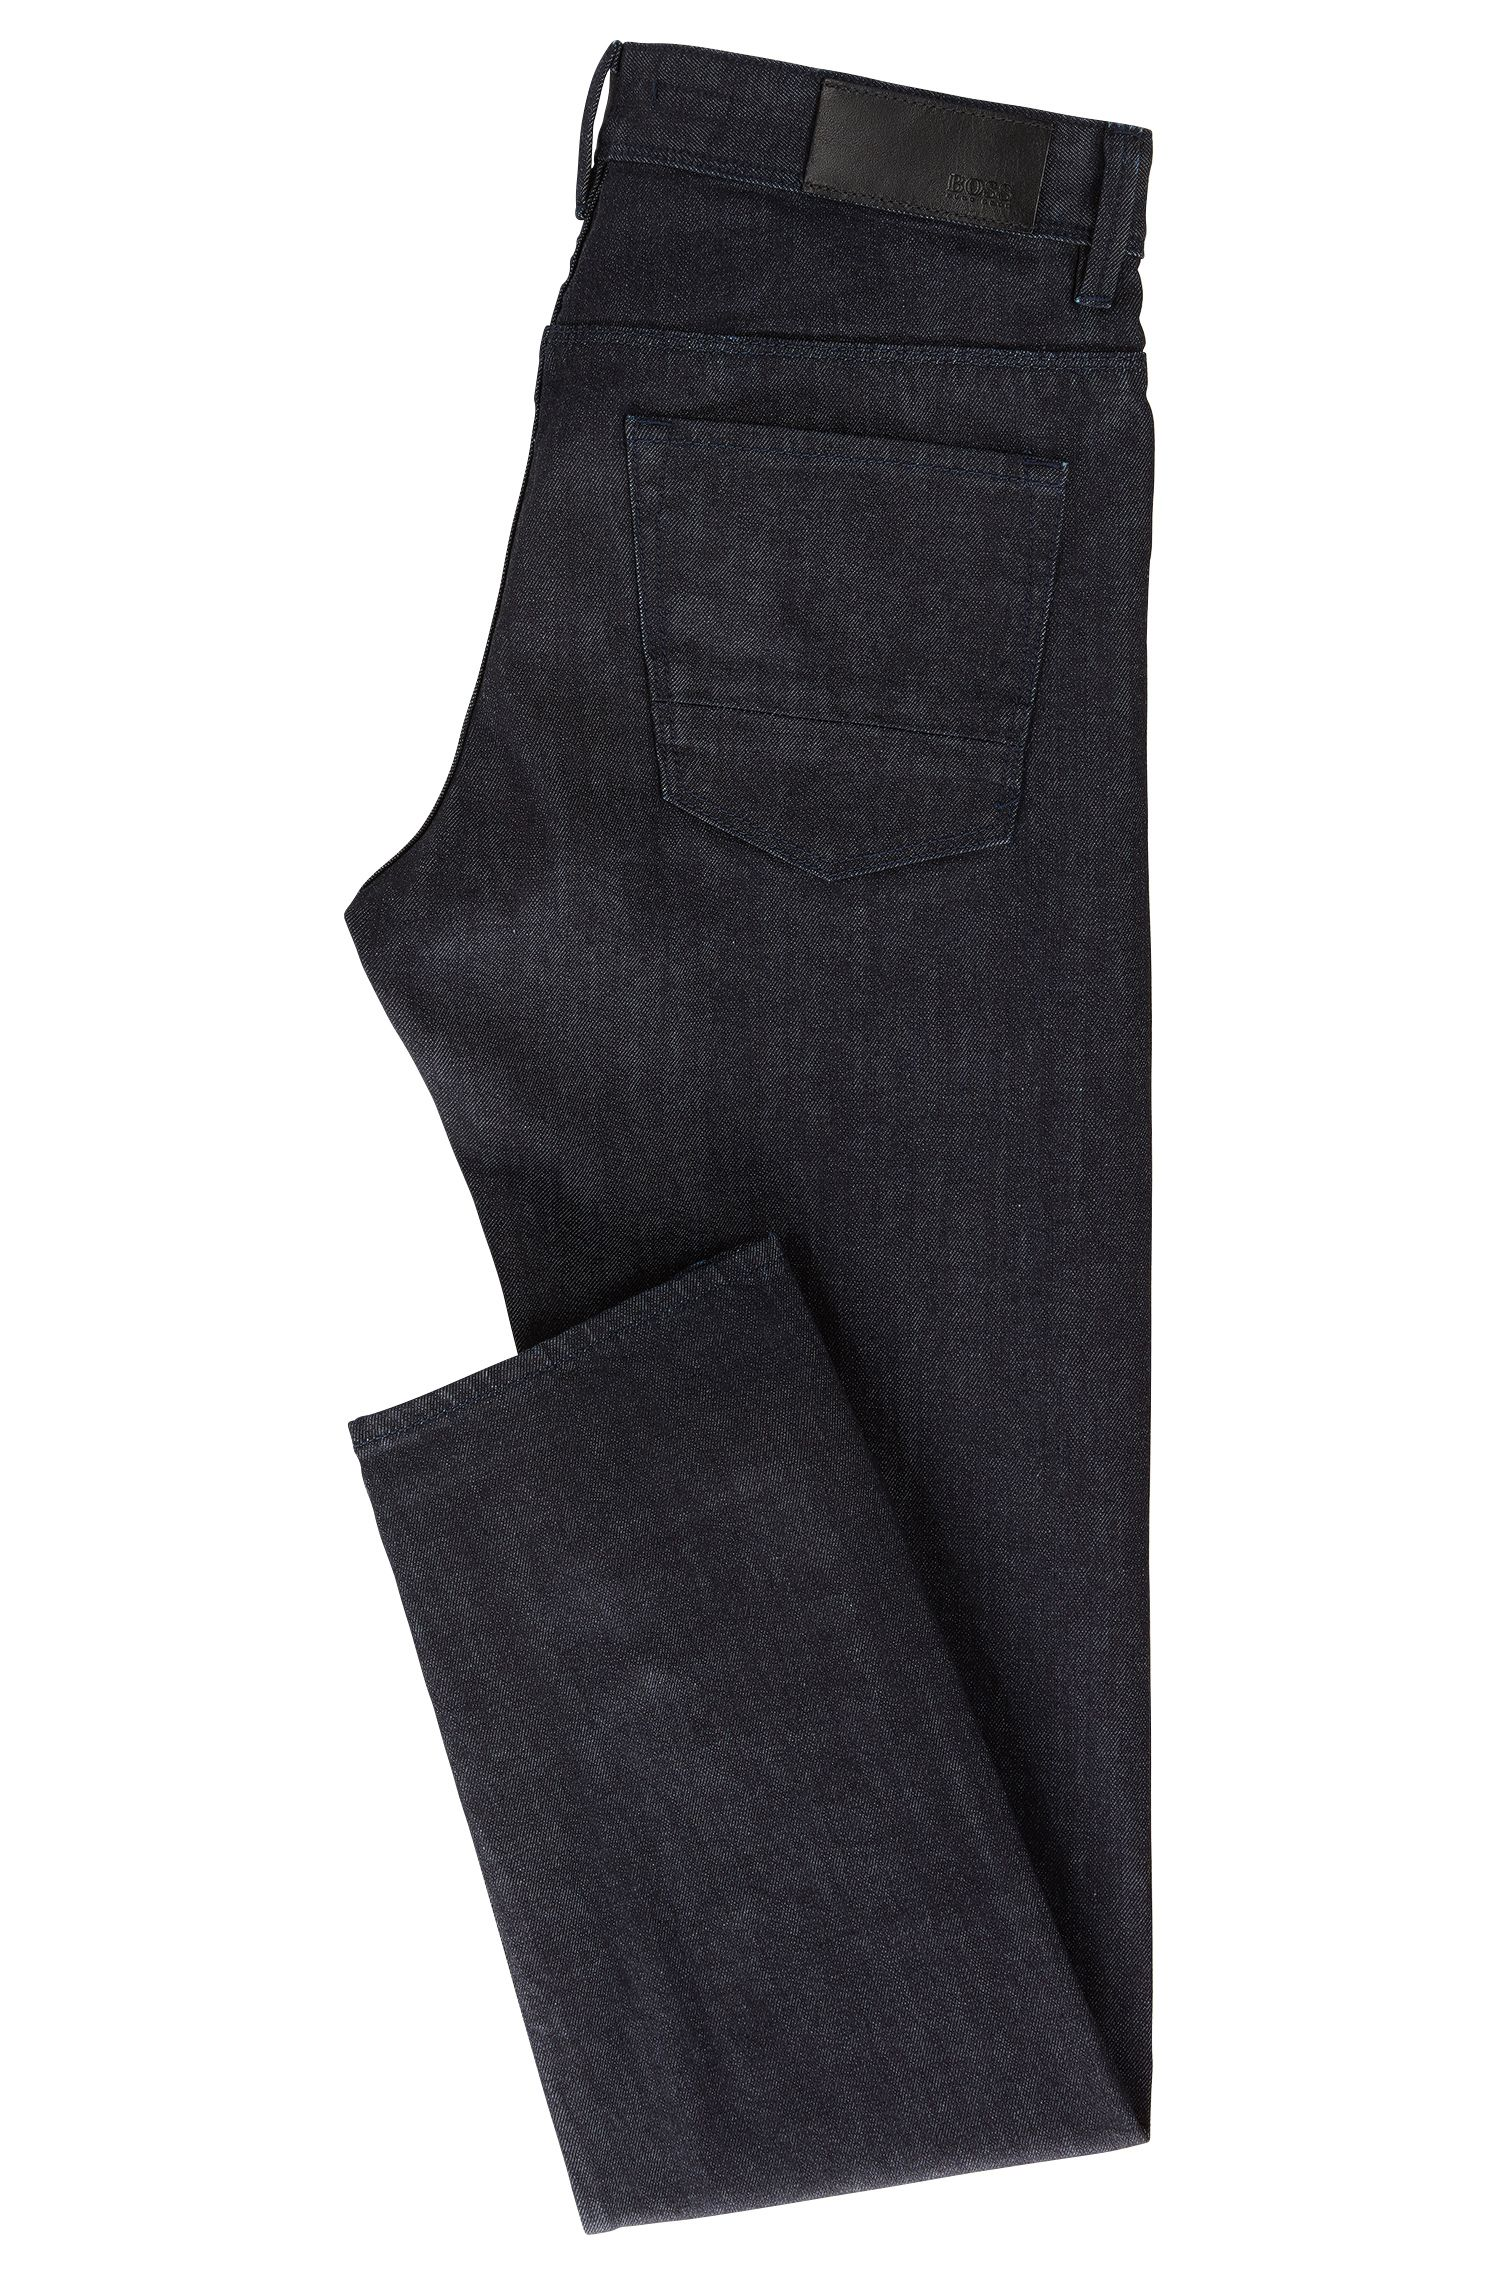 Slim-Fit Jeans aus elastischem Selvedge Denim